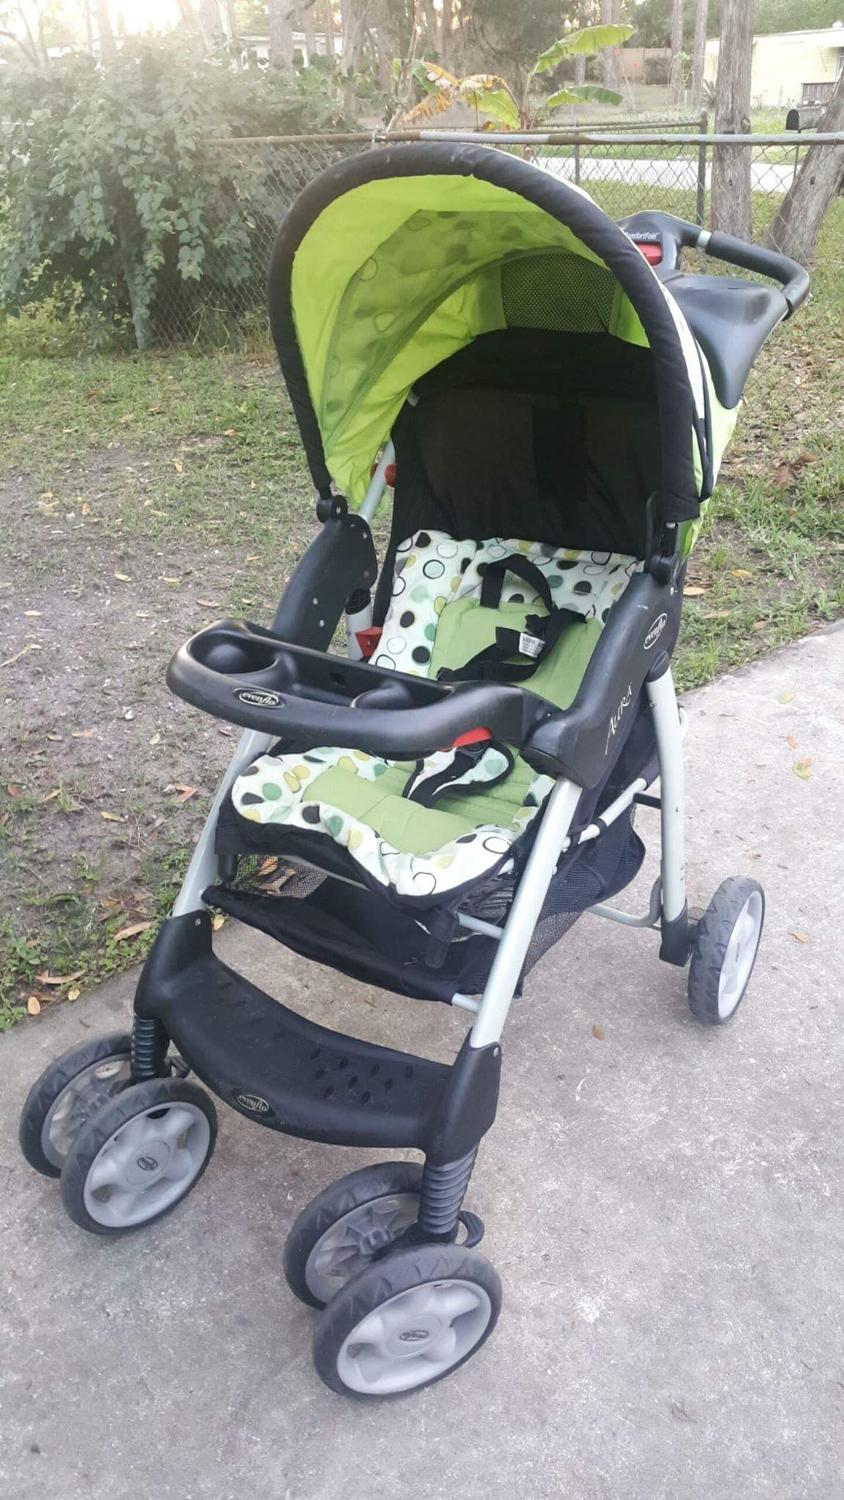 Find more Evenflo Stroller for sale at up to 90% off